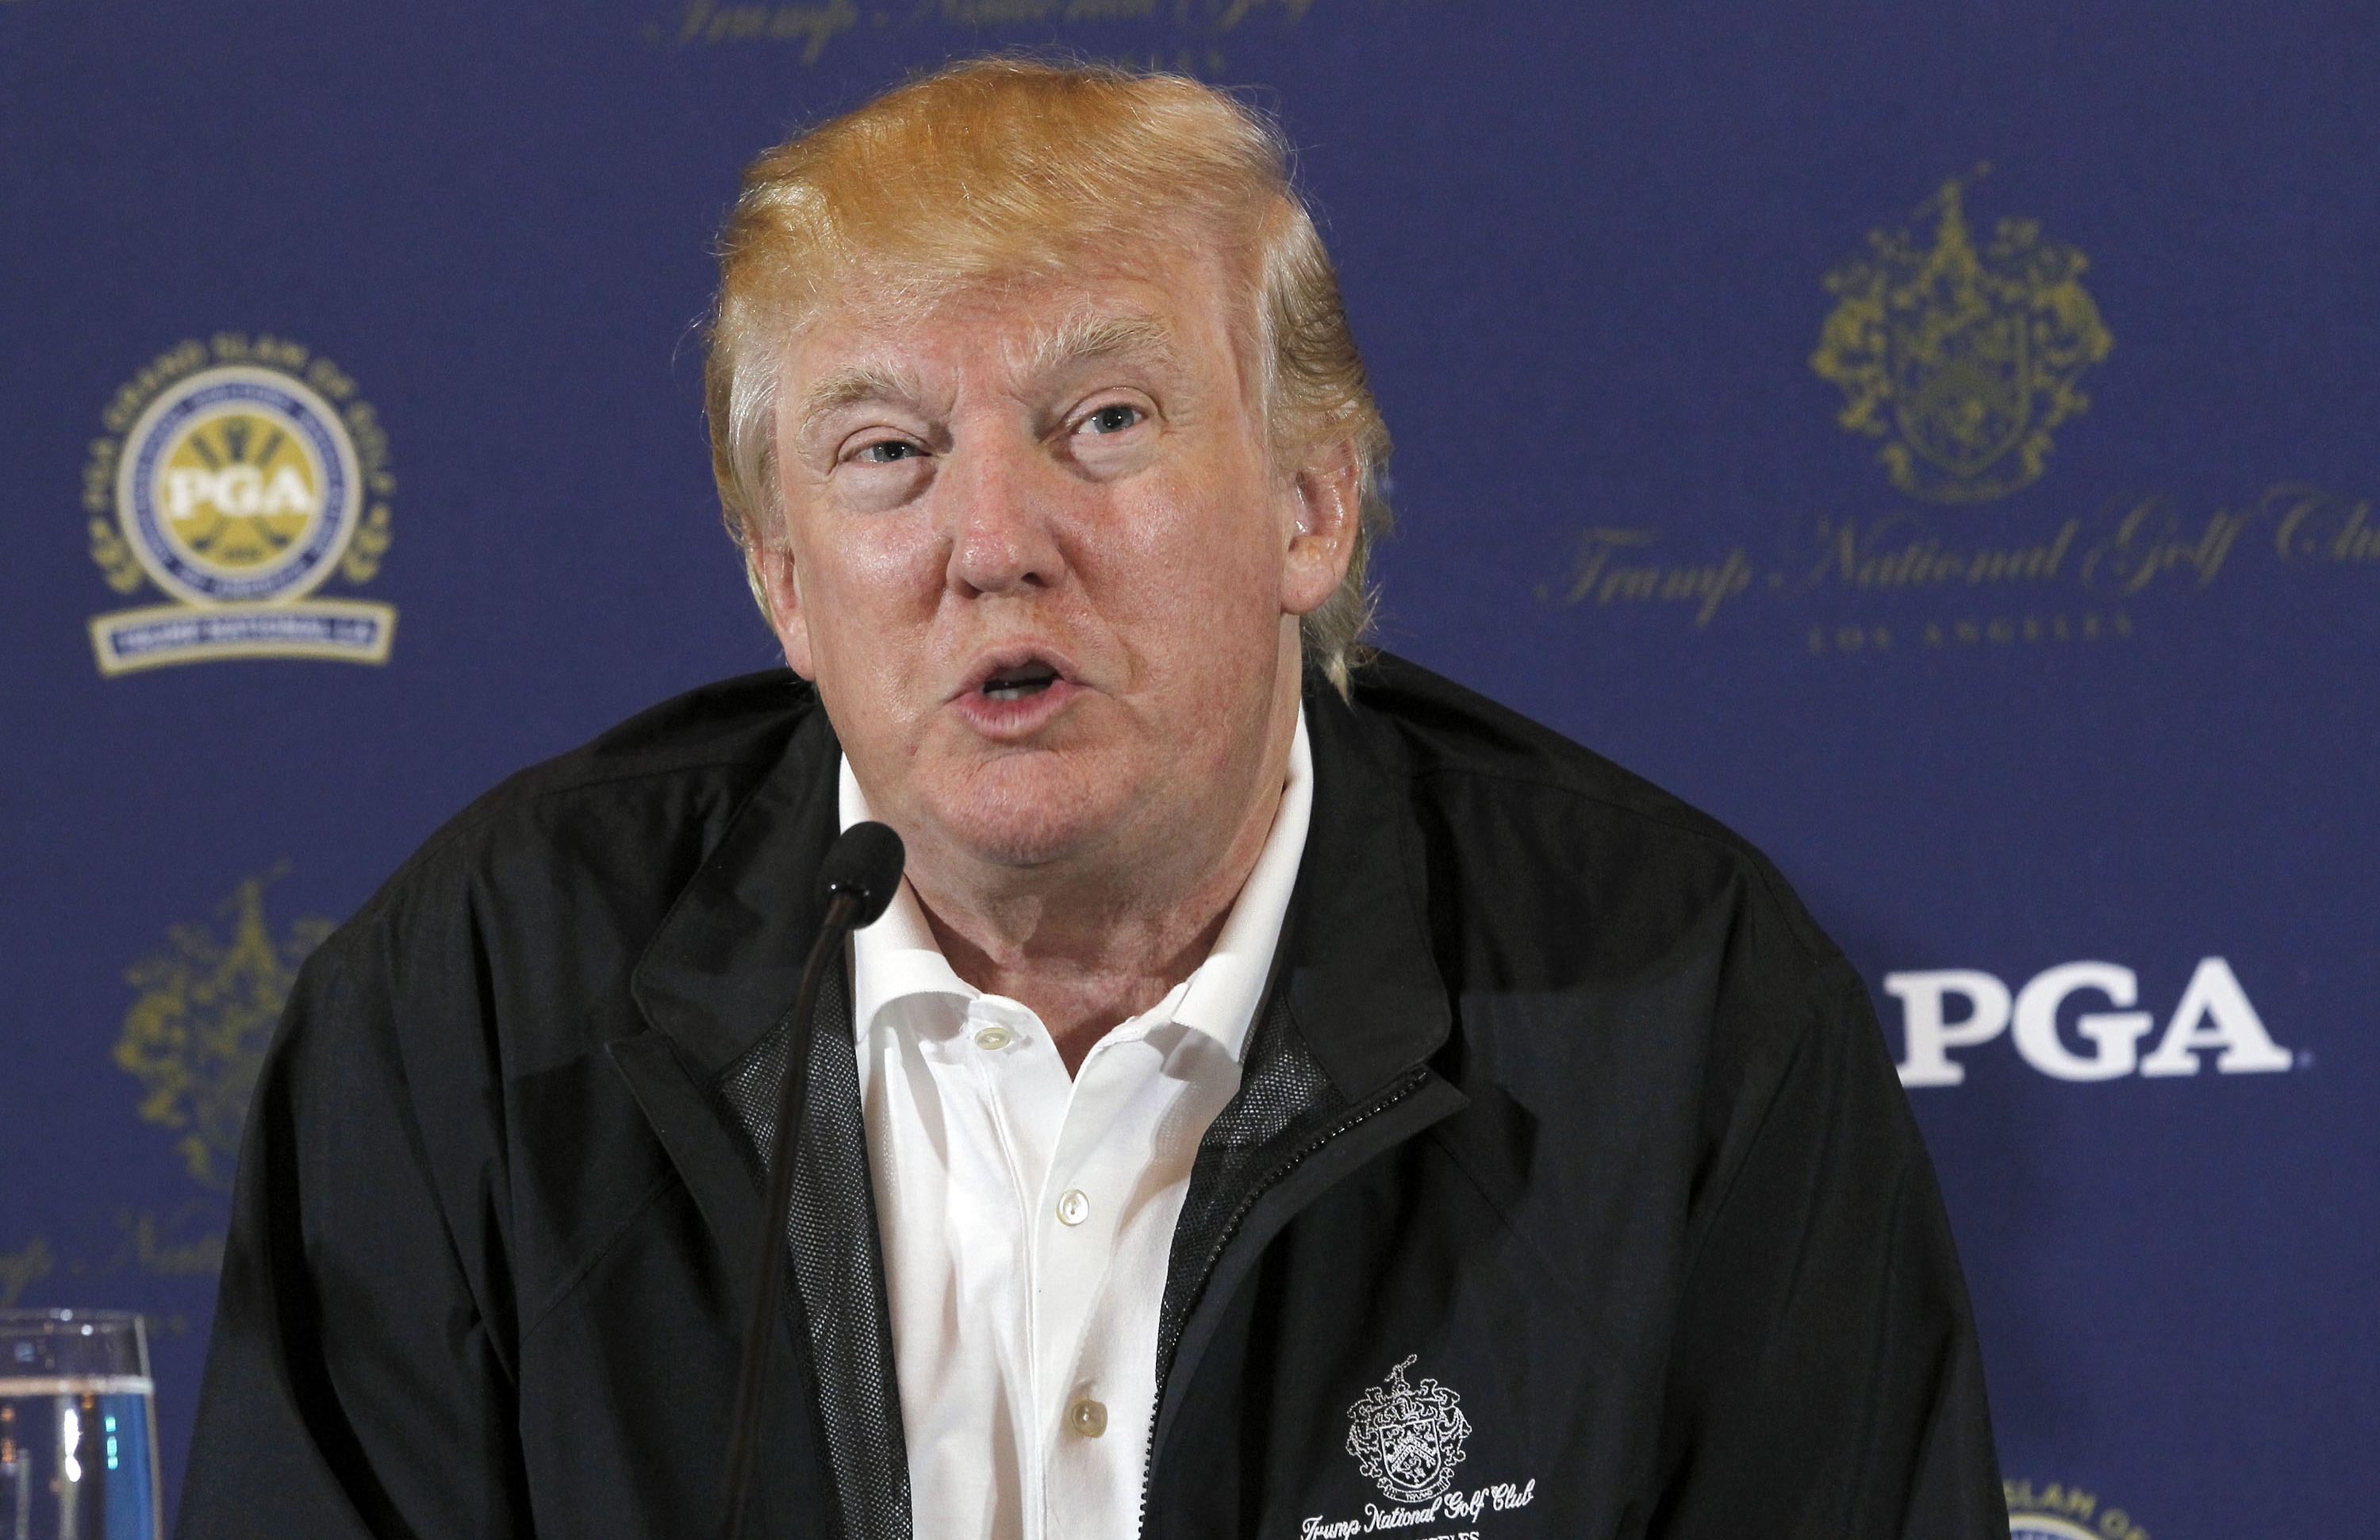 Donald Trump says the PGA Tour has not told him it plans to move from his Doral course in Miami.